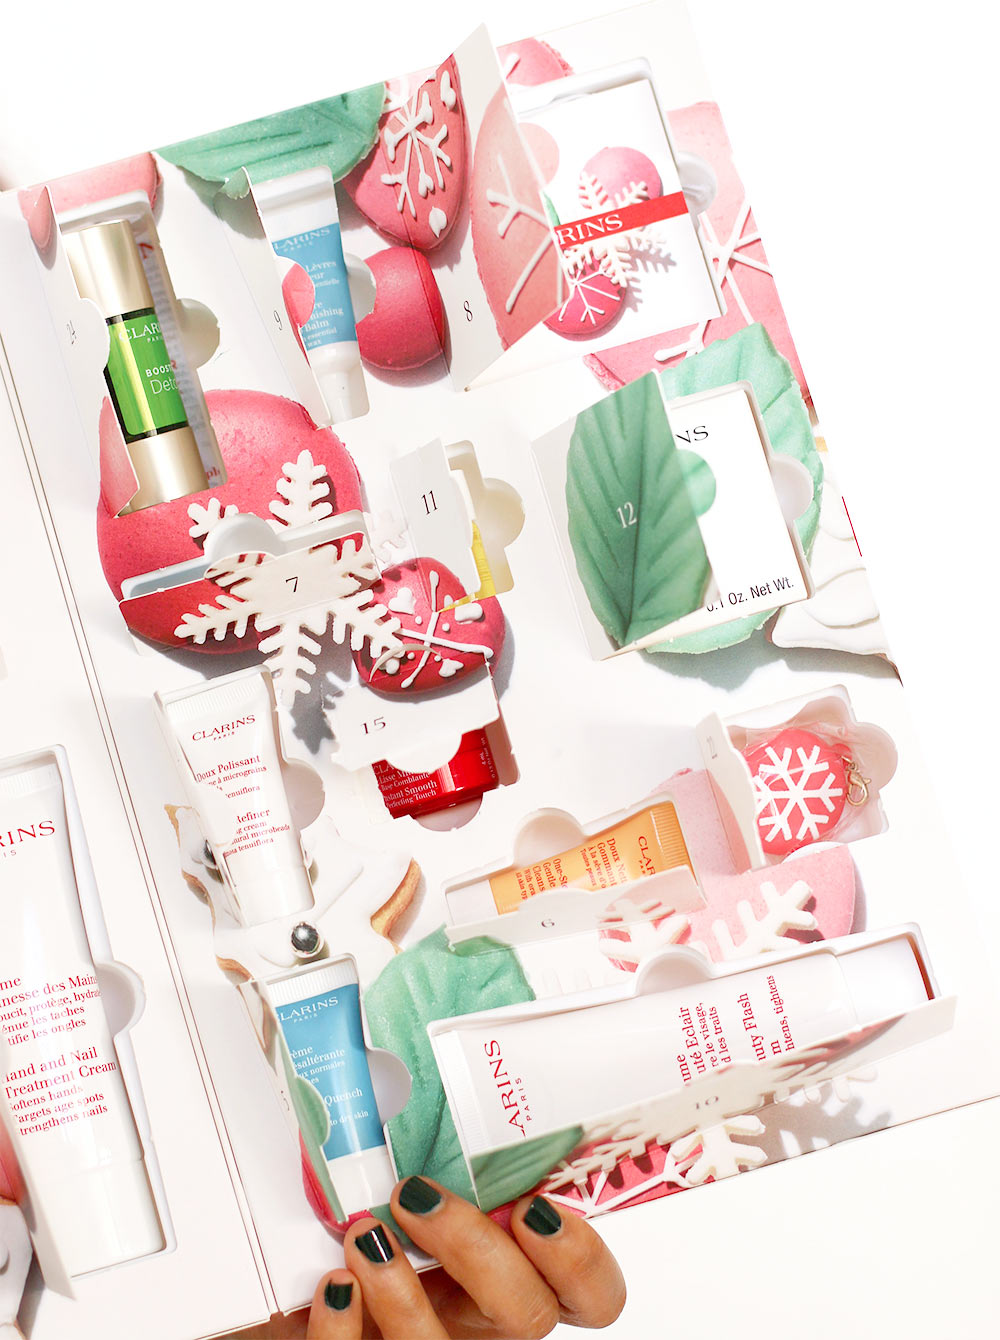 clarins beauty delights advent calendar goodies